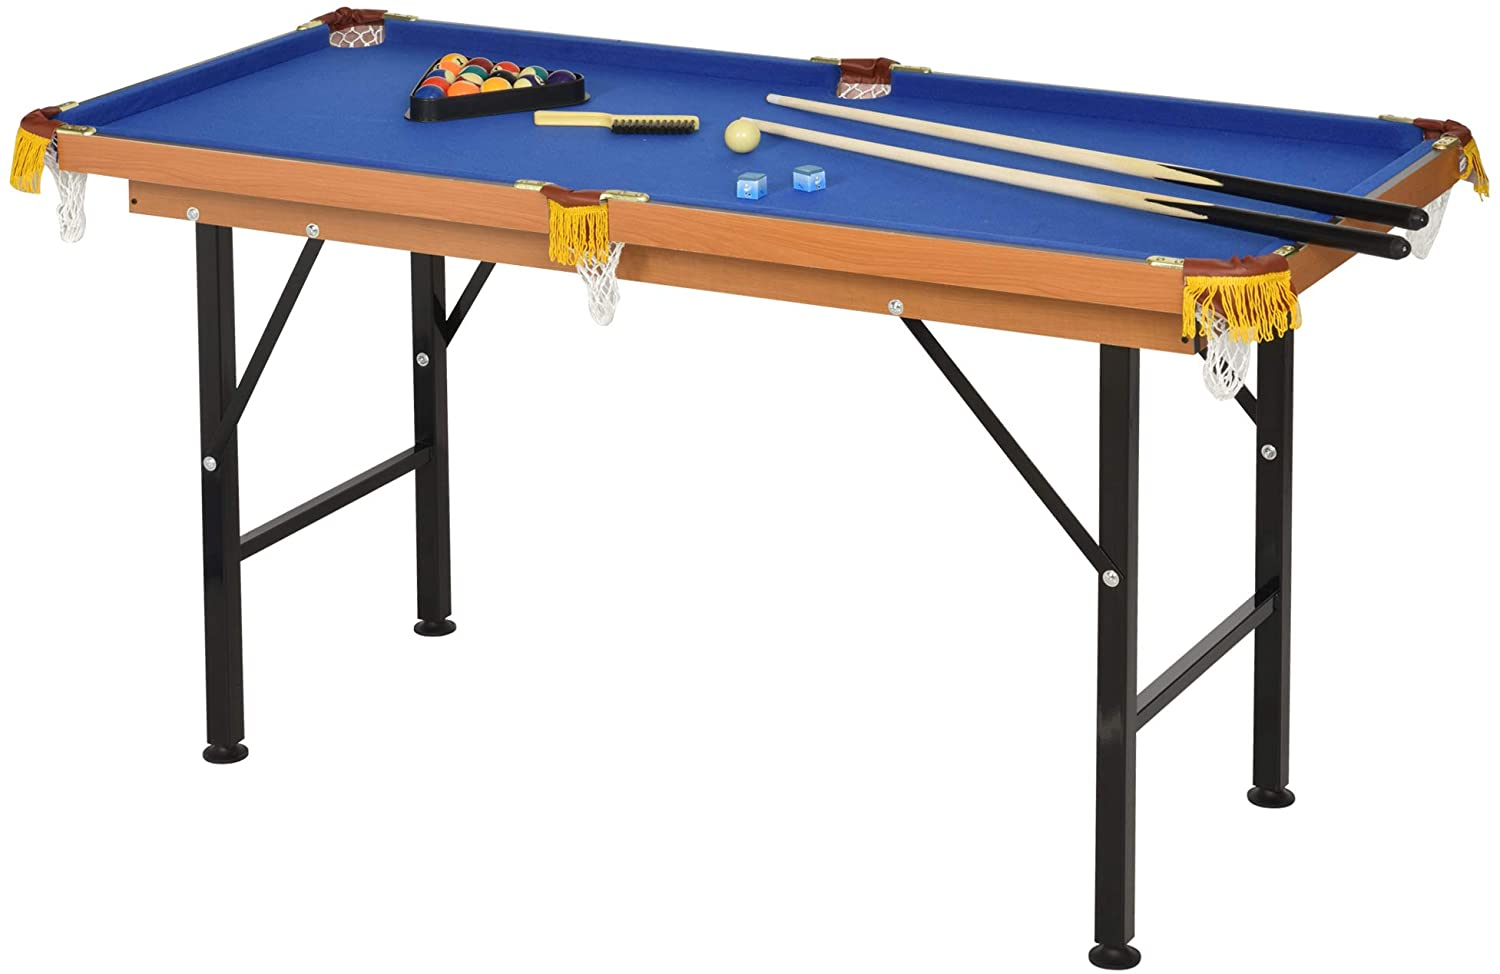 Soozier 55'' Portable Folding Billiards Table Game Pool Table for Kids Adults with Cues, Ball, Rack, Brush, Chalk